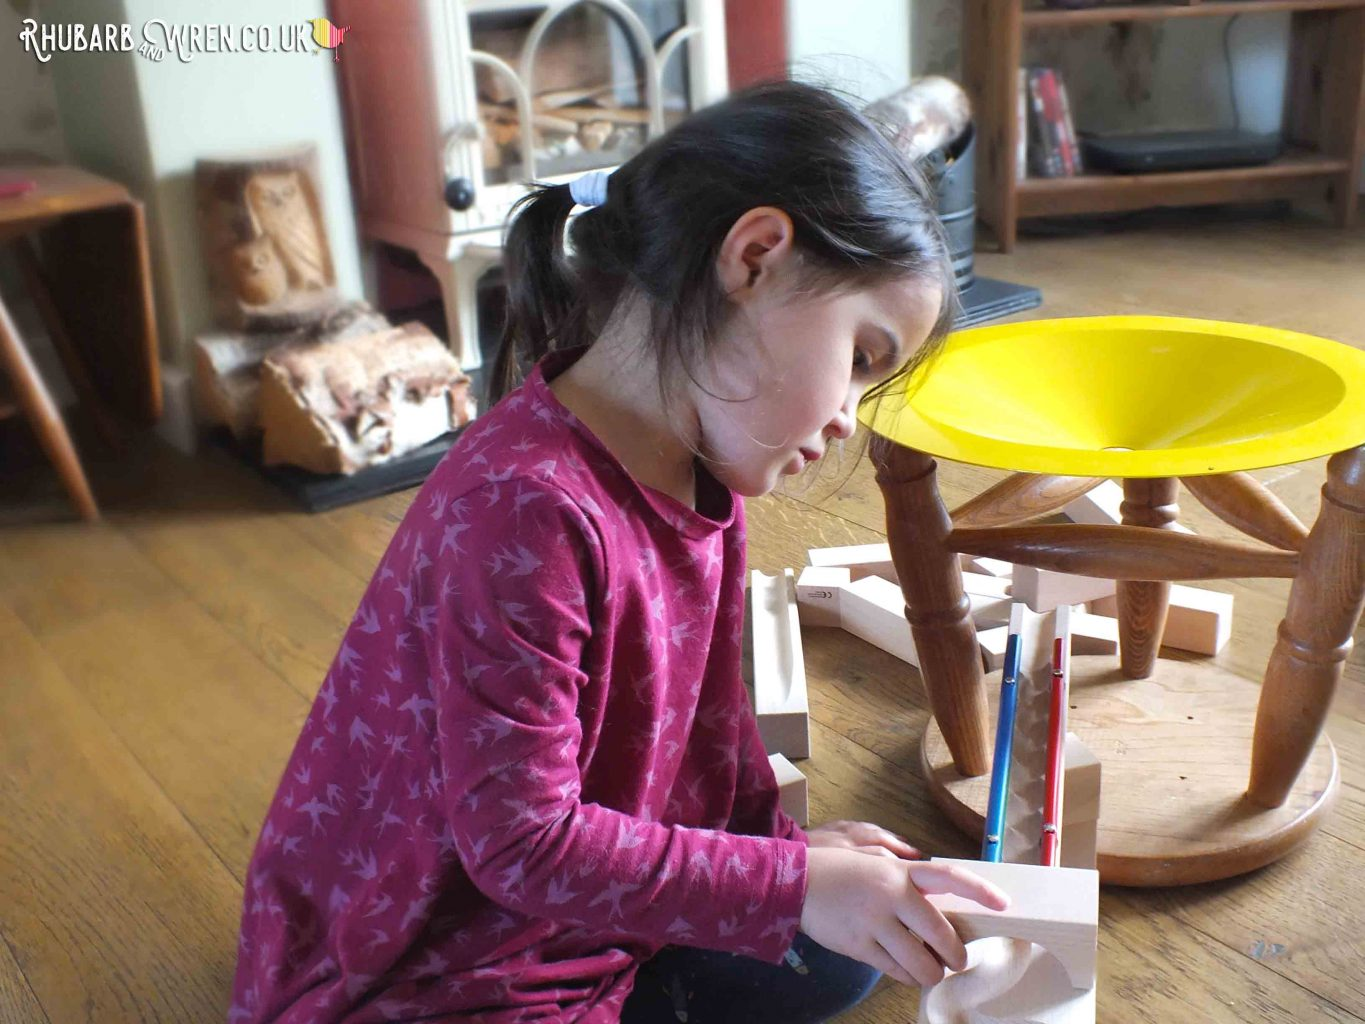 Girl placing wooden bridge piece onto marble run track